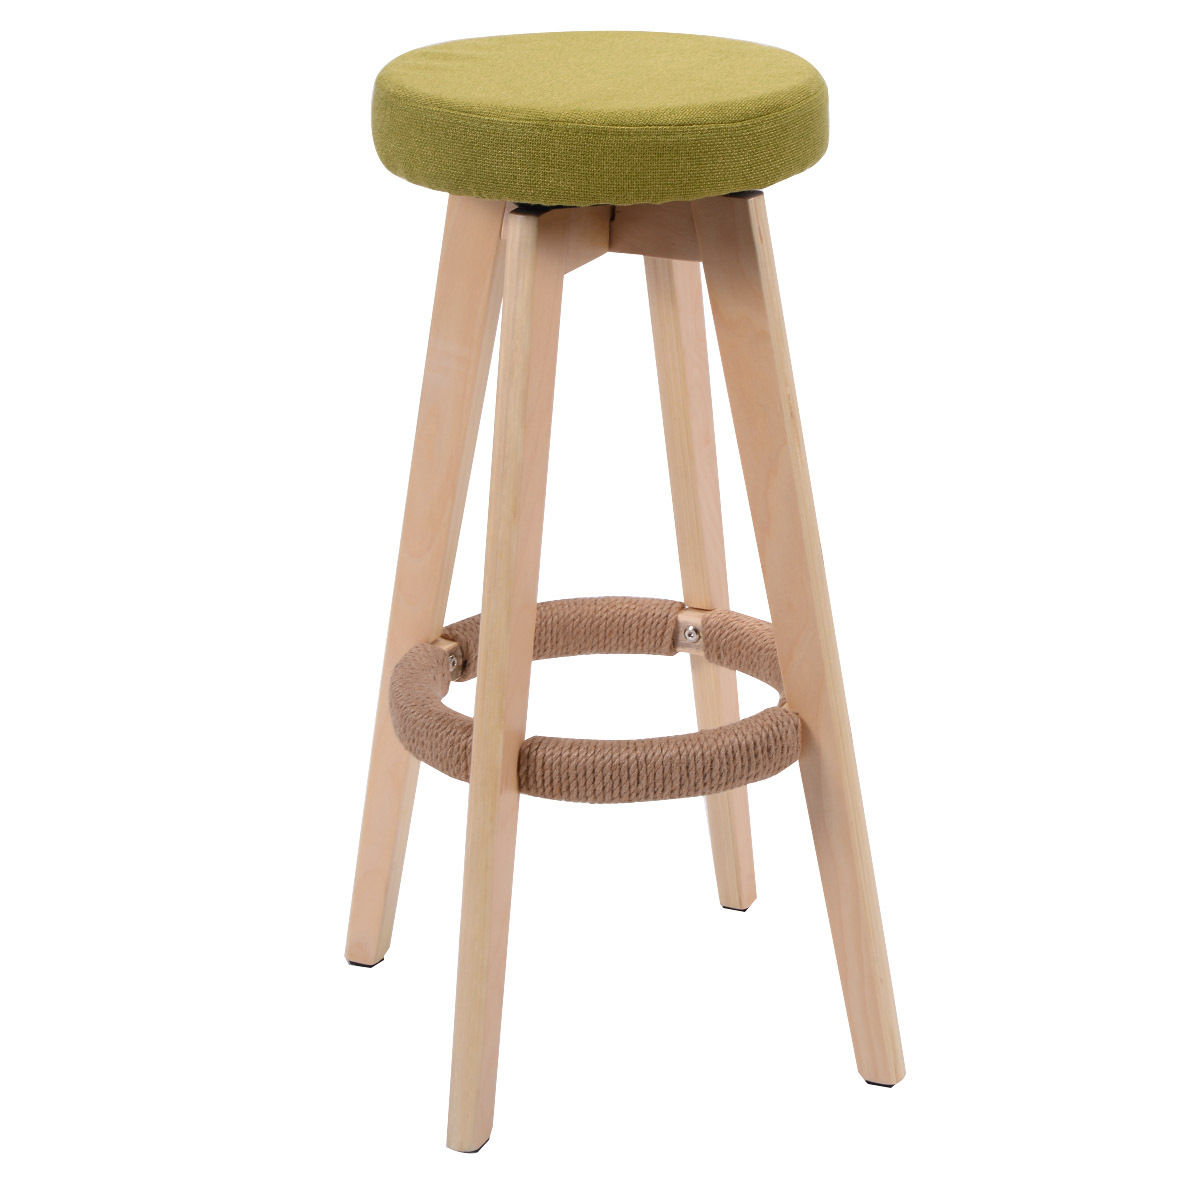 Giantex 29-Inch Round Wood Bar Stool Modern Dining Chair Counter Height Linen Seat Green Bar Chairs Home Furniture HW52977GR vintage metal bar chair bar chair lift 100% wooden bar chair the pulley of the bar chair wood stool metal furniture